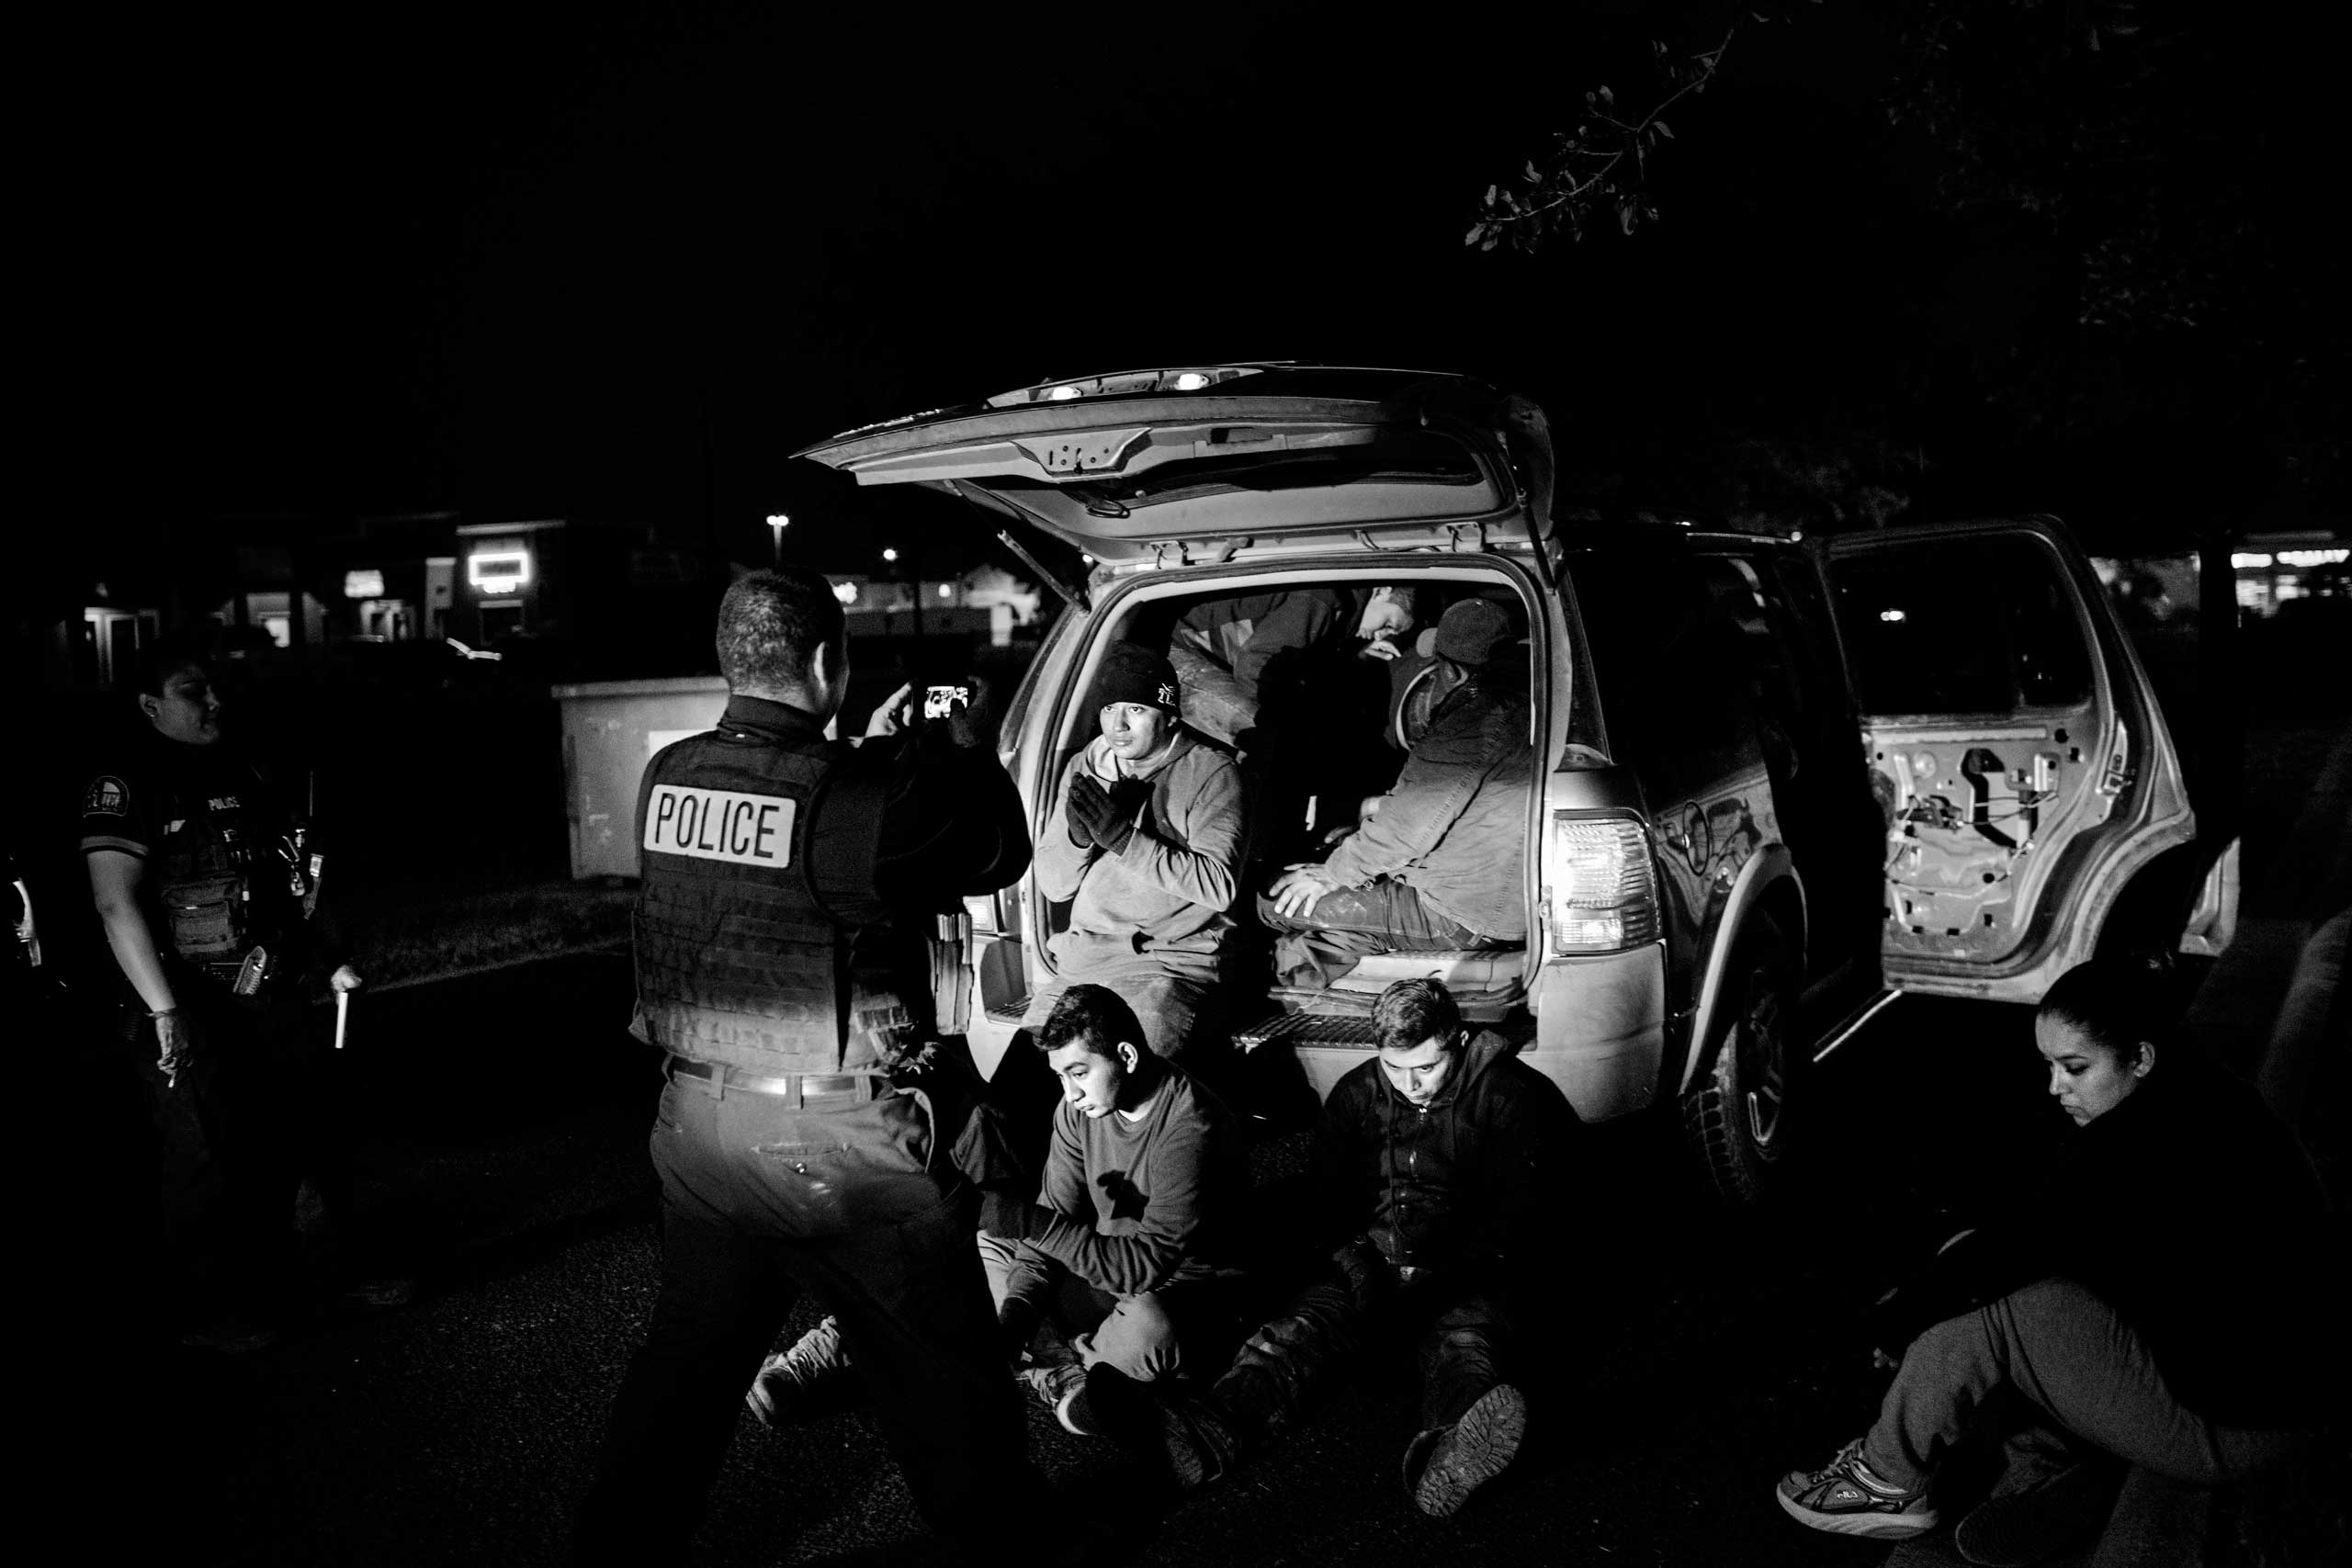 The New Yorker Photo Booth: Taken at the BorderA vehicle transporting 12 undocumented migrants is pulled over in La Joya near MCallen, Texas on the US-Mexico border.